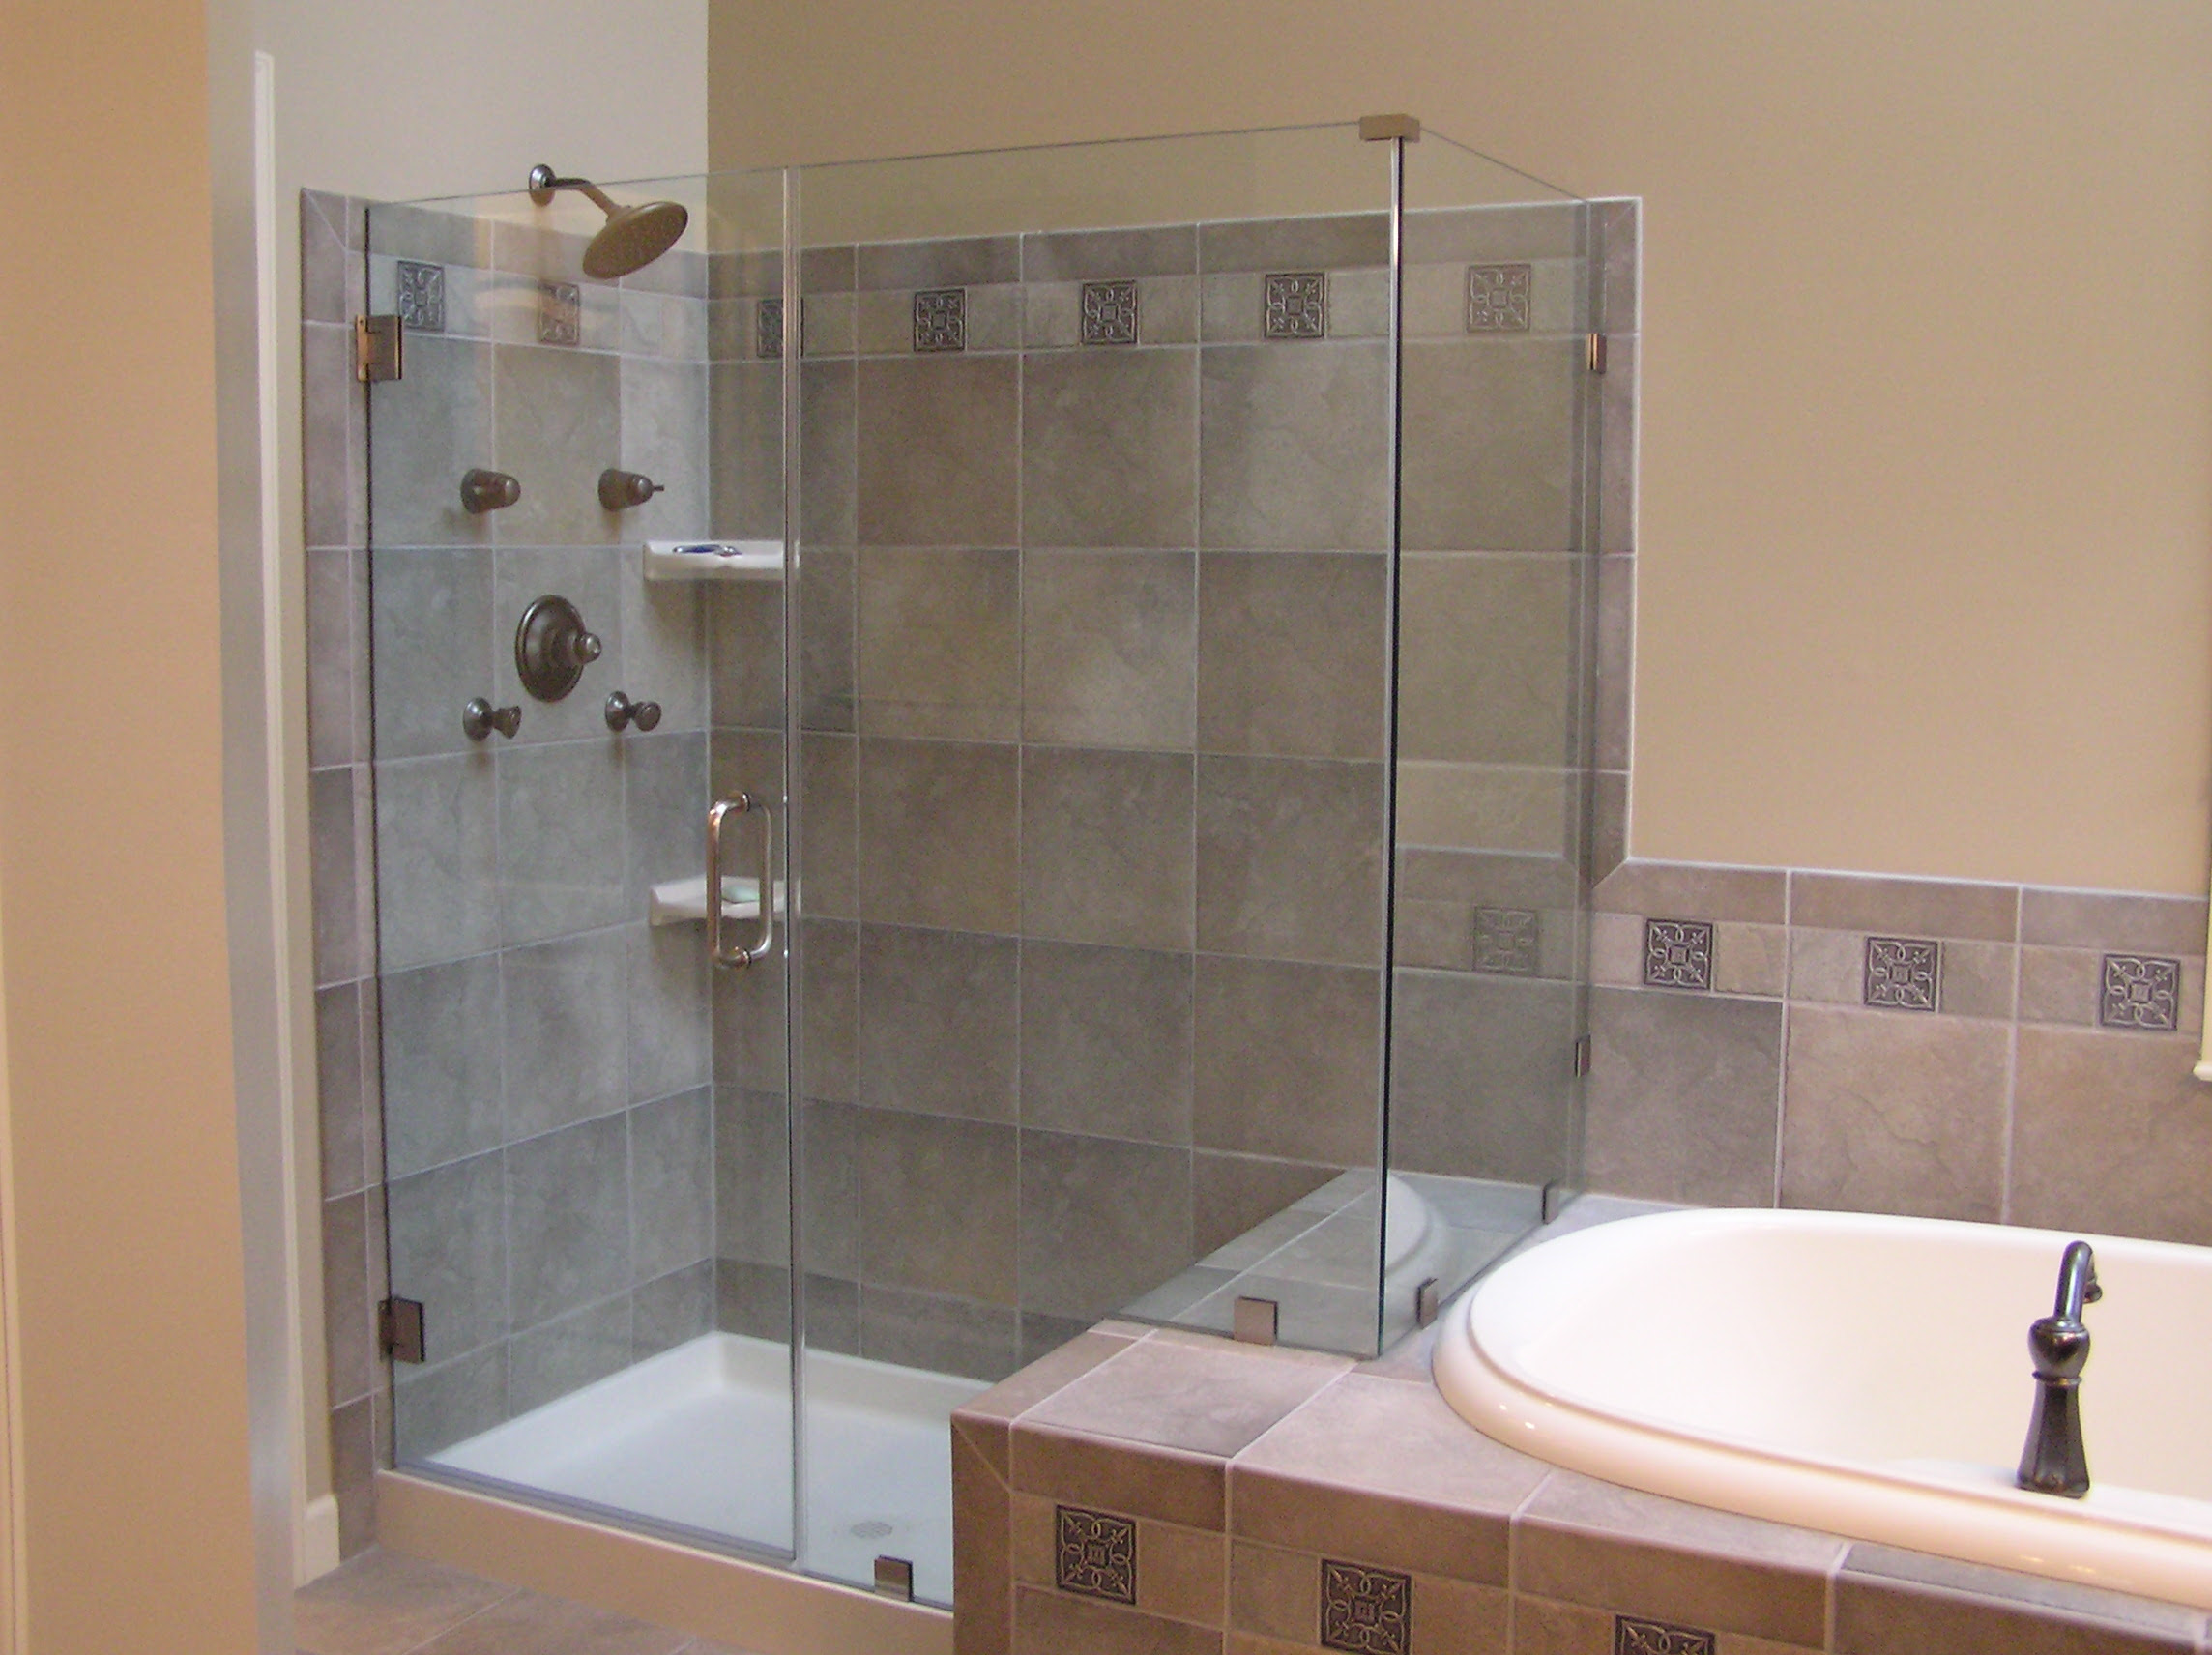 25 Best Bathroom Remodeling Ideas and Inspiration - The ...